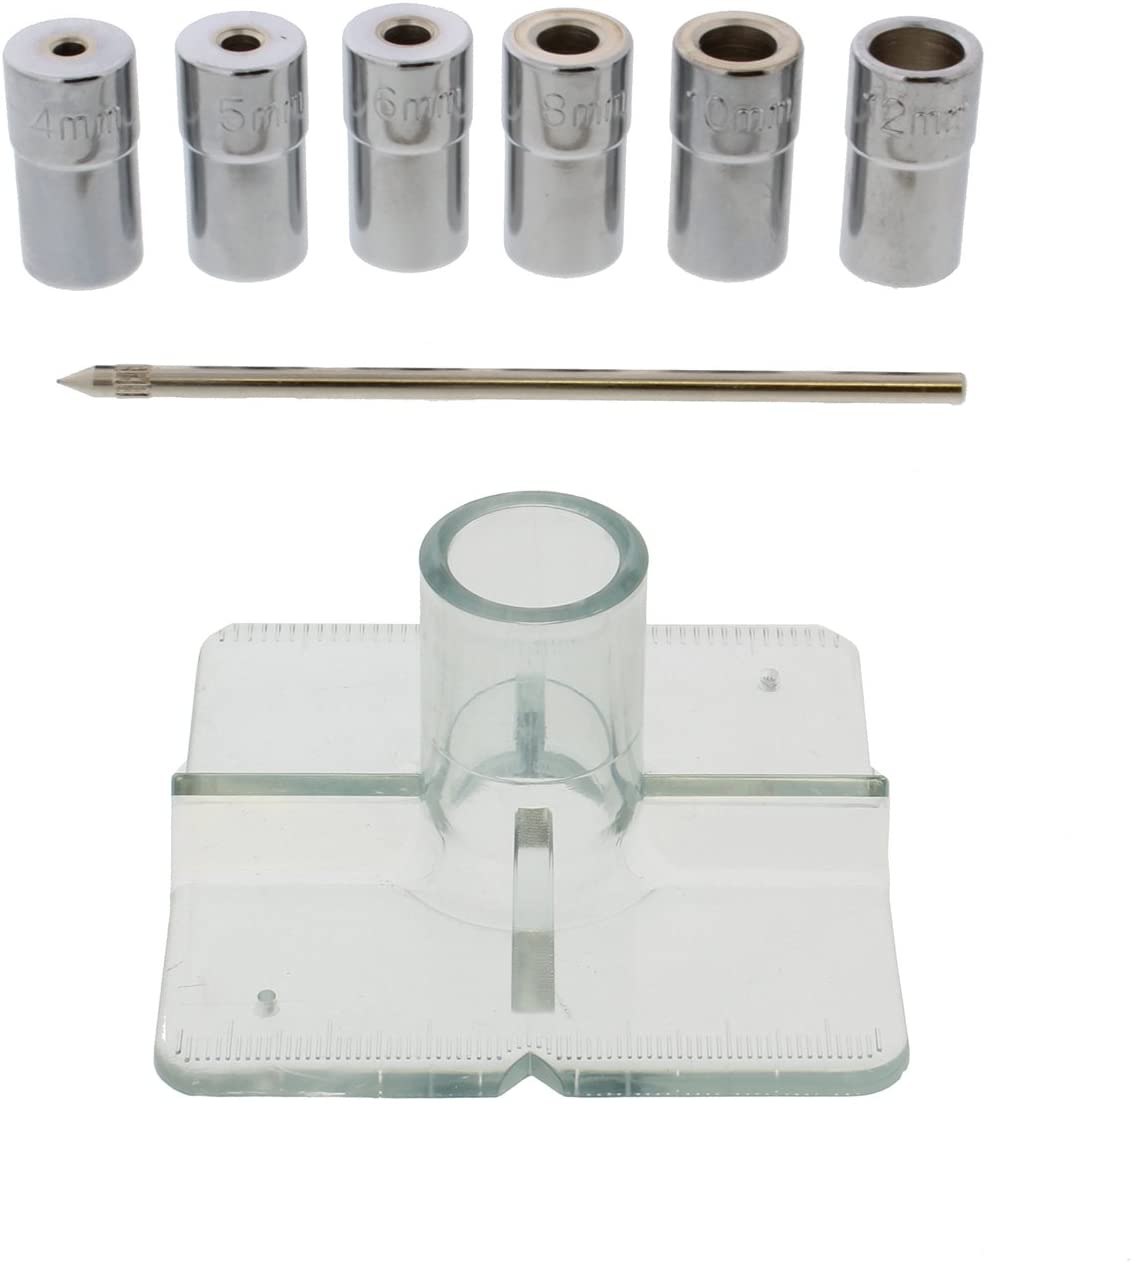 3//16 to 1//2in Bushings Locating Pin DCT SAE Drill Bit Guide Centering Punch 8-pc Center Drilling Set Kit Guide